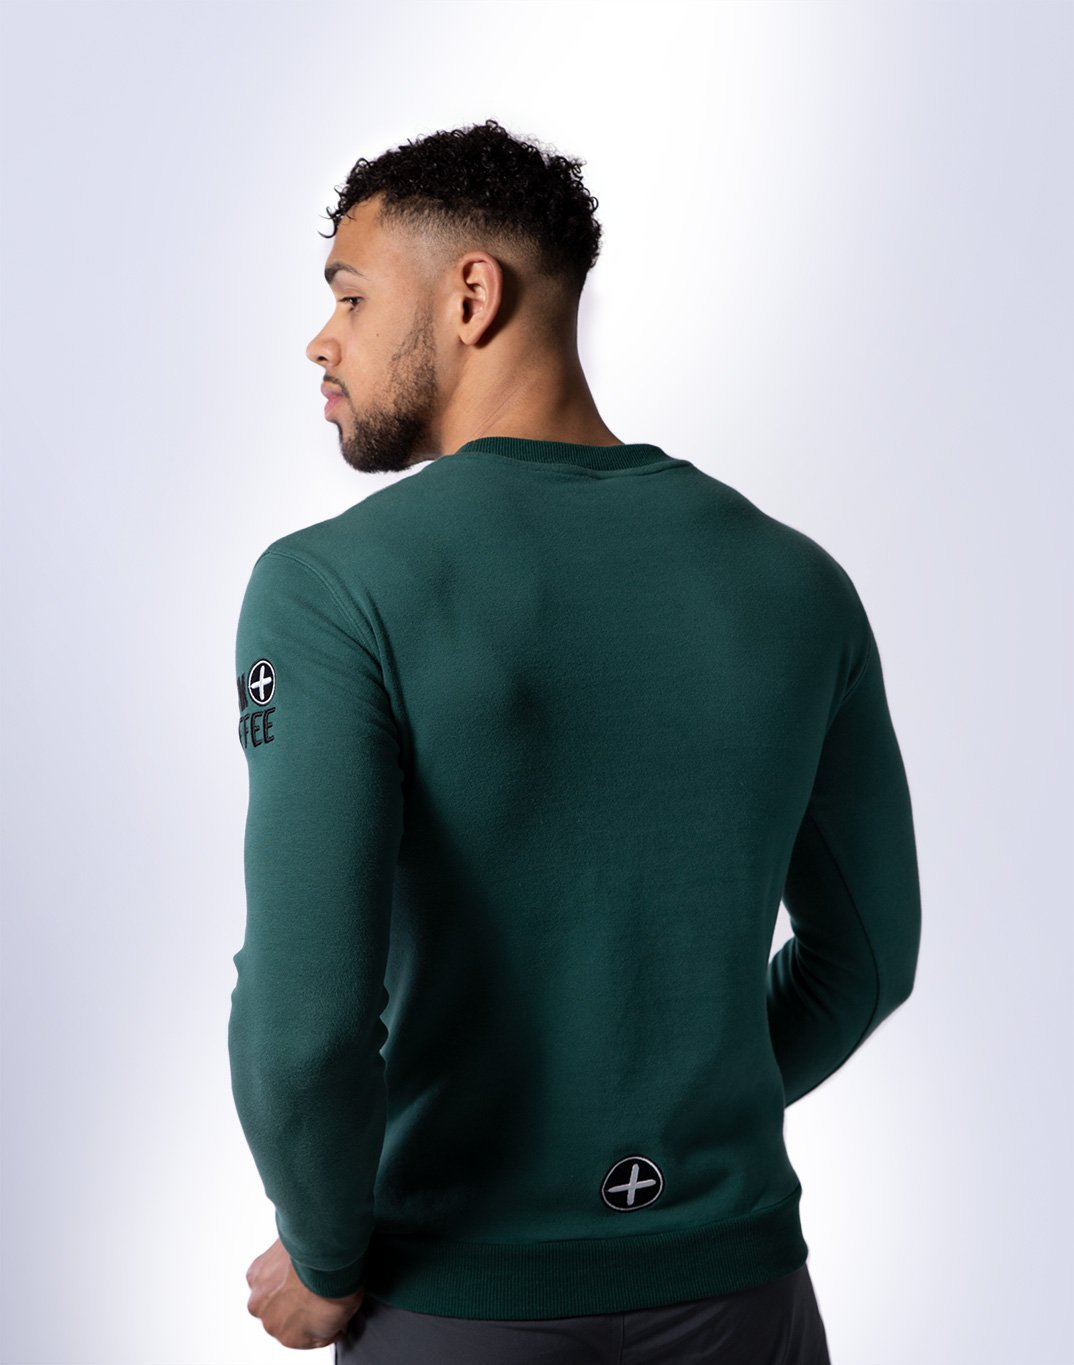 Gym Plus Coffee Long Sleeve UniCrew in Hunter Green Designed in Ireland